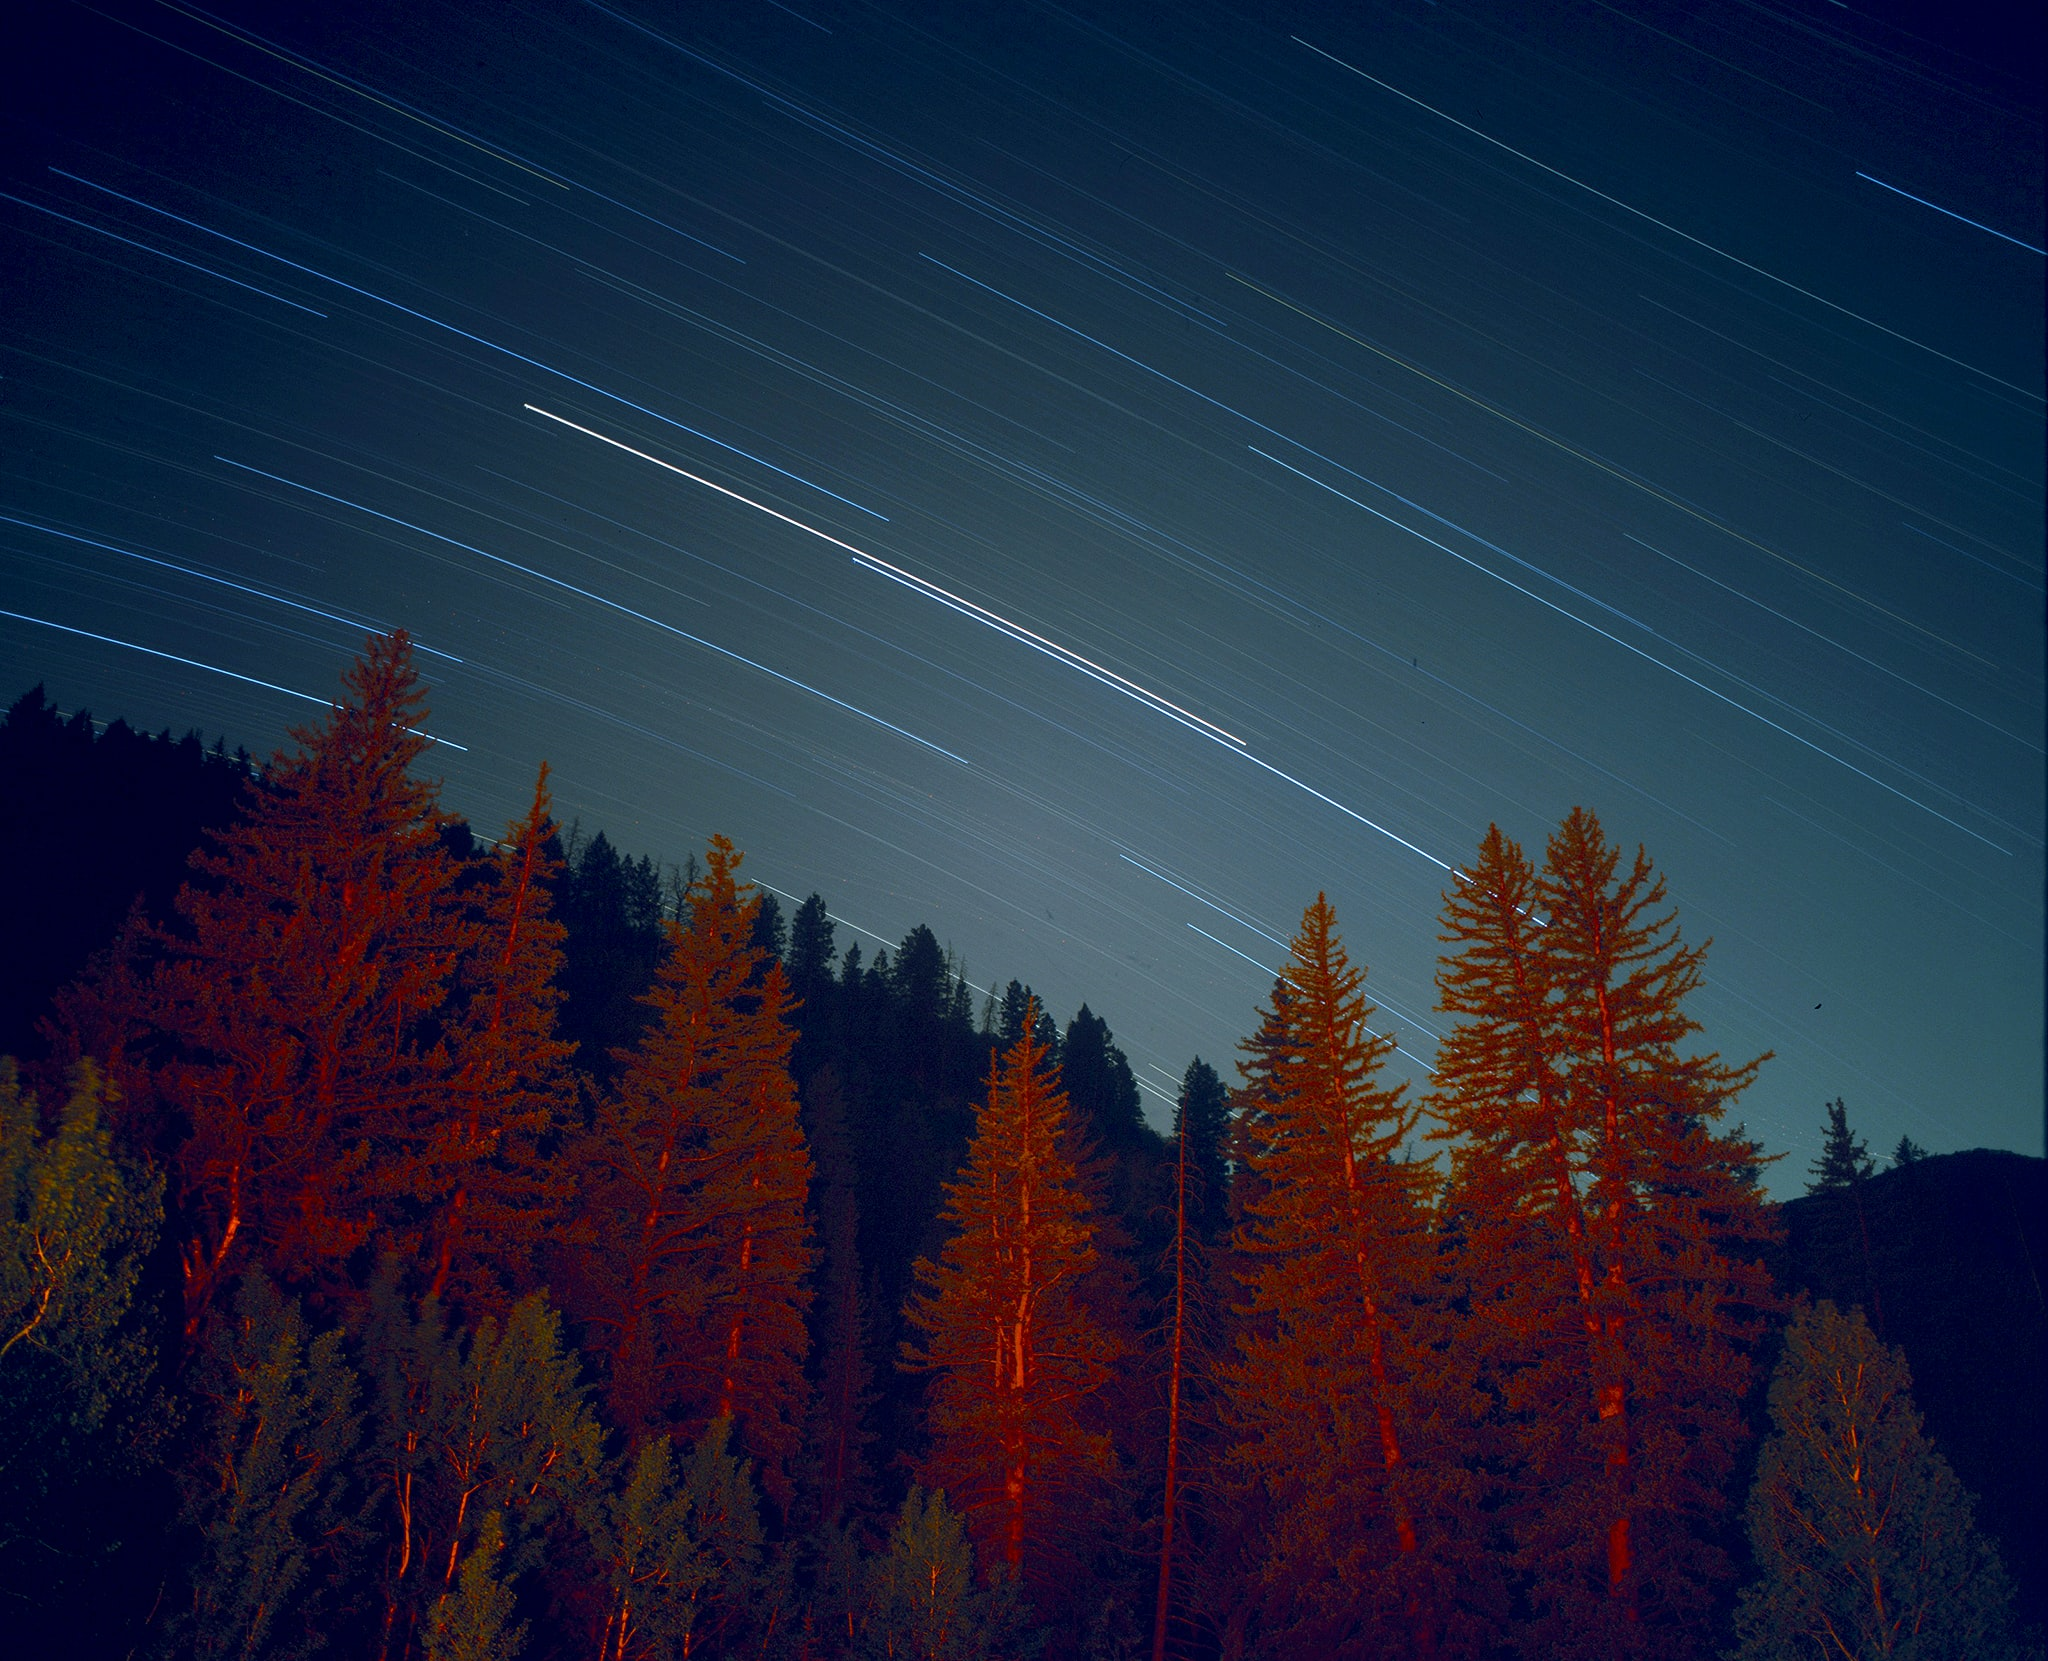 time lapse photo of star trail during nighttime